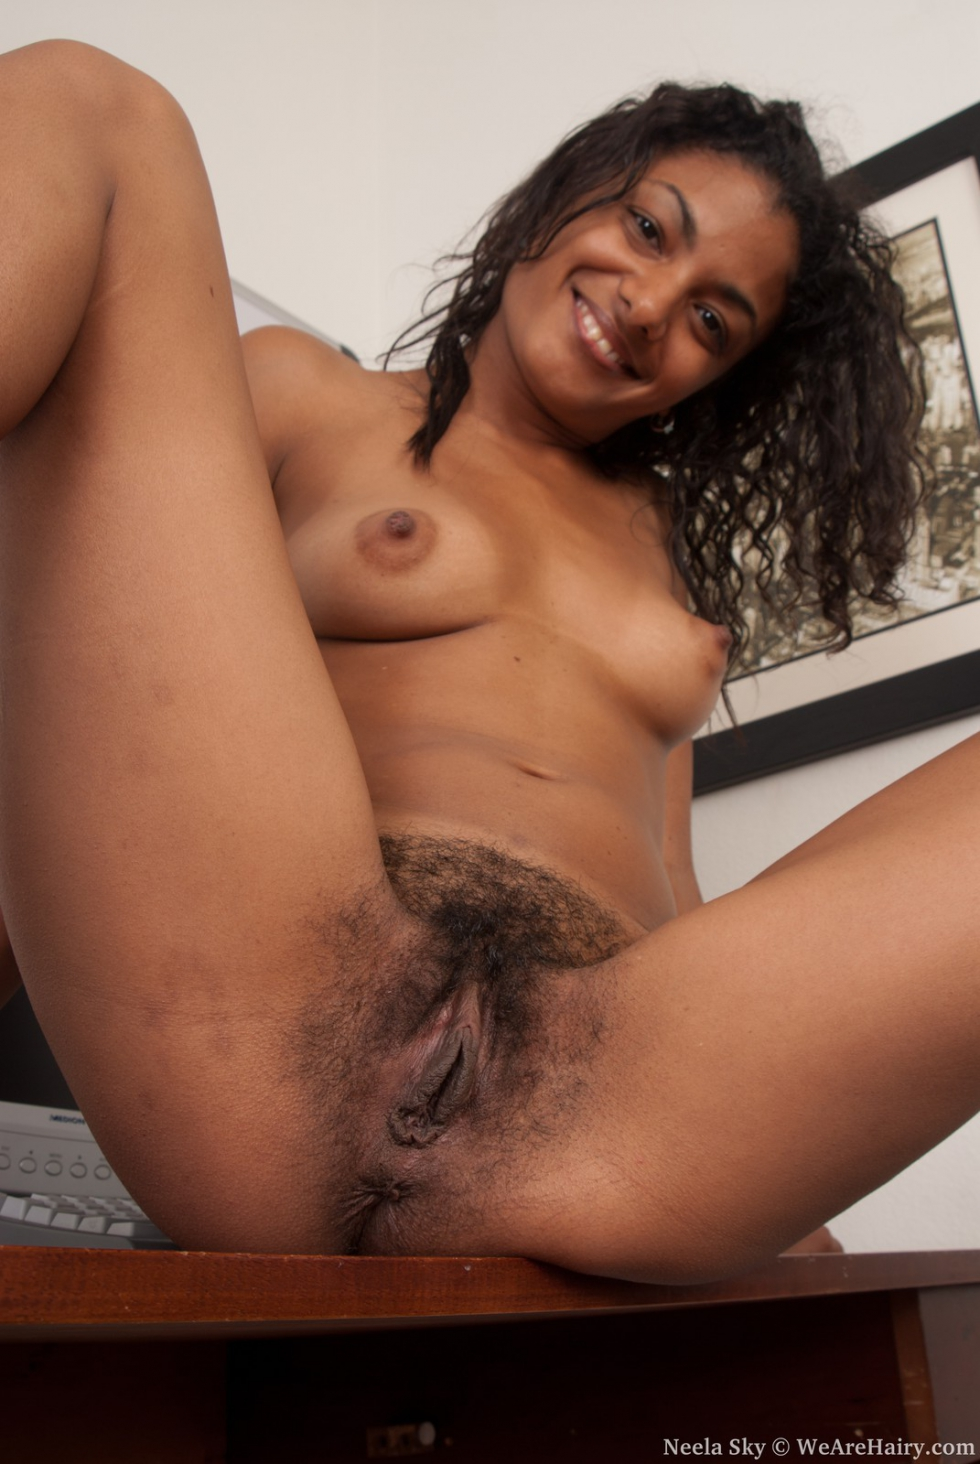 Black girls with fake tits naked